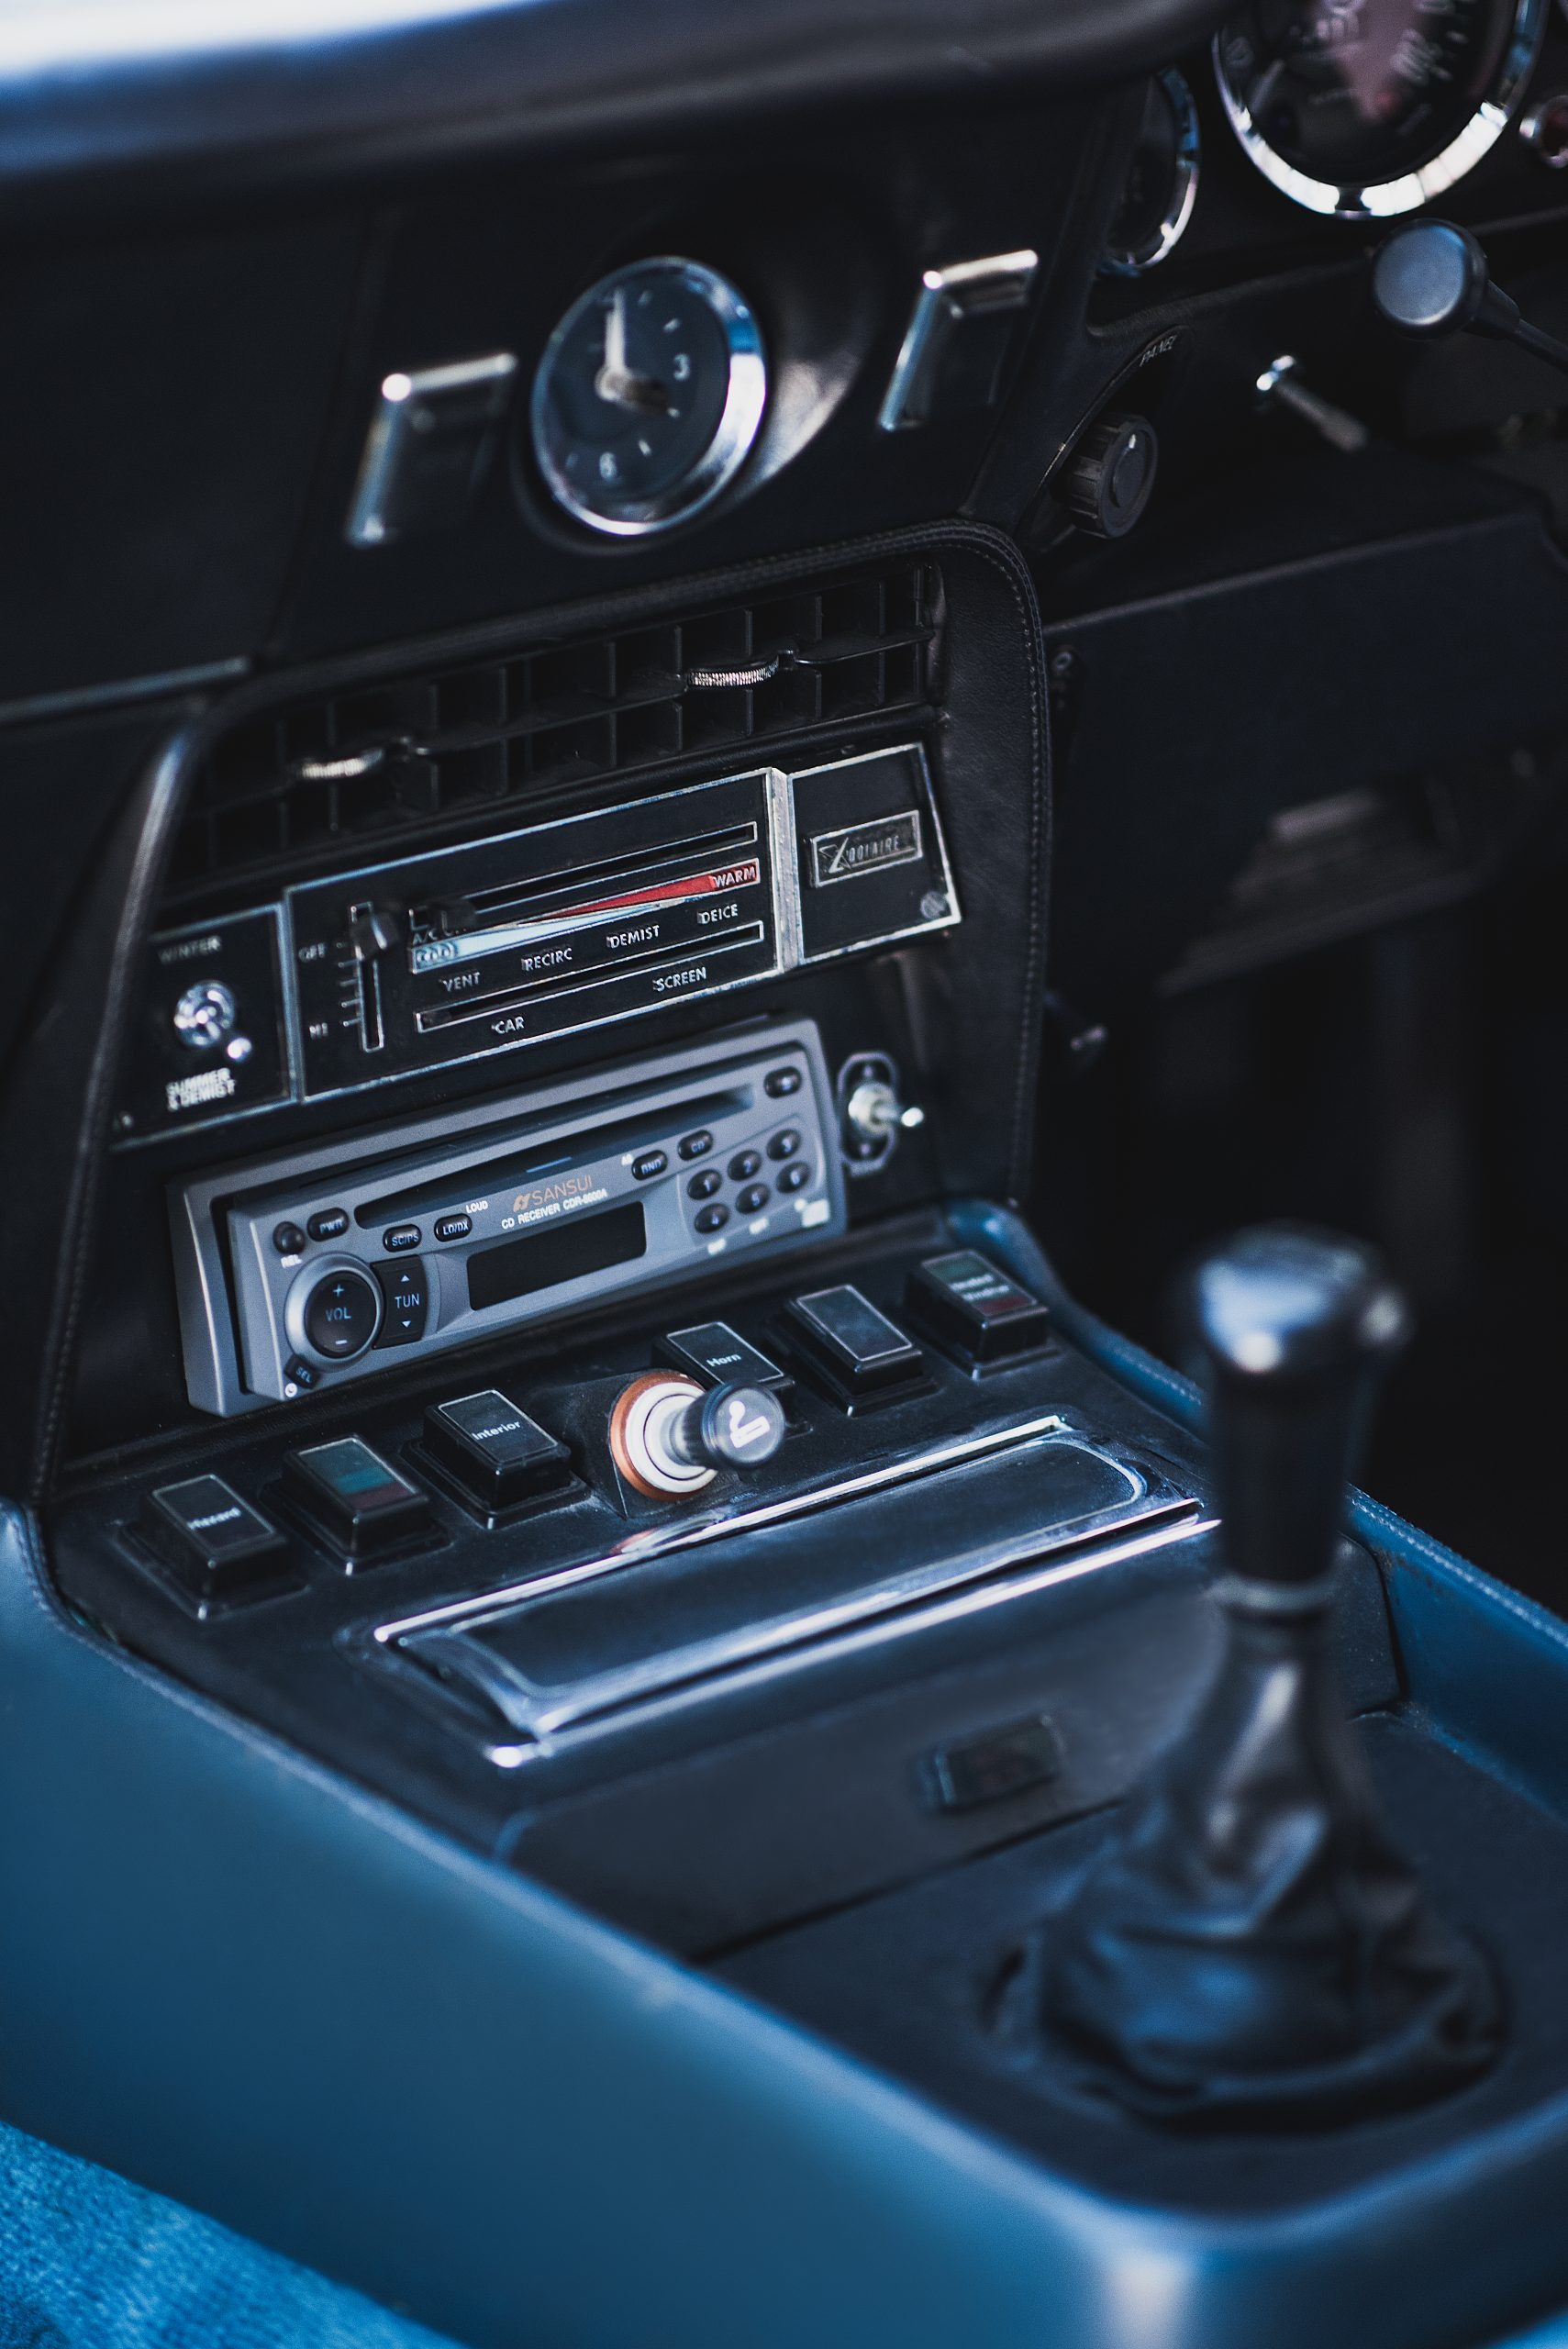 Detail shot of middle panel with the gear stick and radio